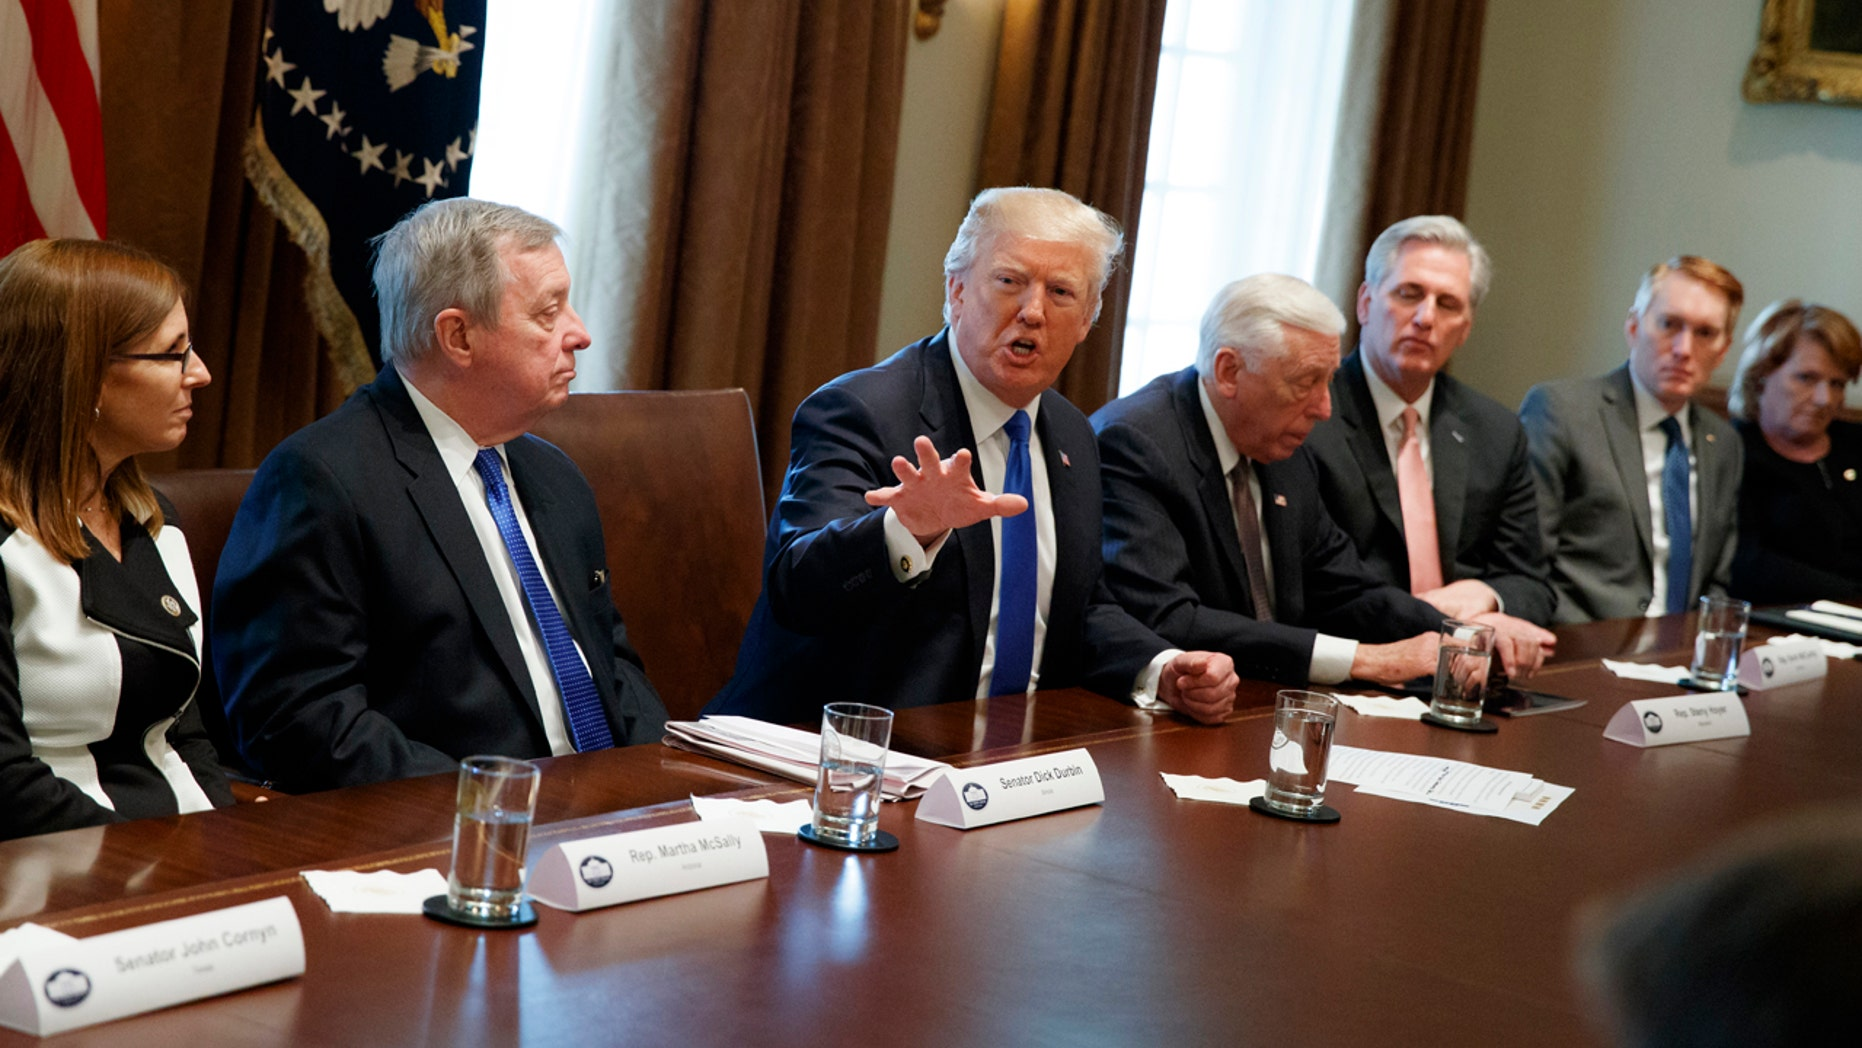 January 9, 2018: President Donald Trump speaks during a meeting with lawmakers on immigration policy in the Cabinet Room of the White House.